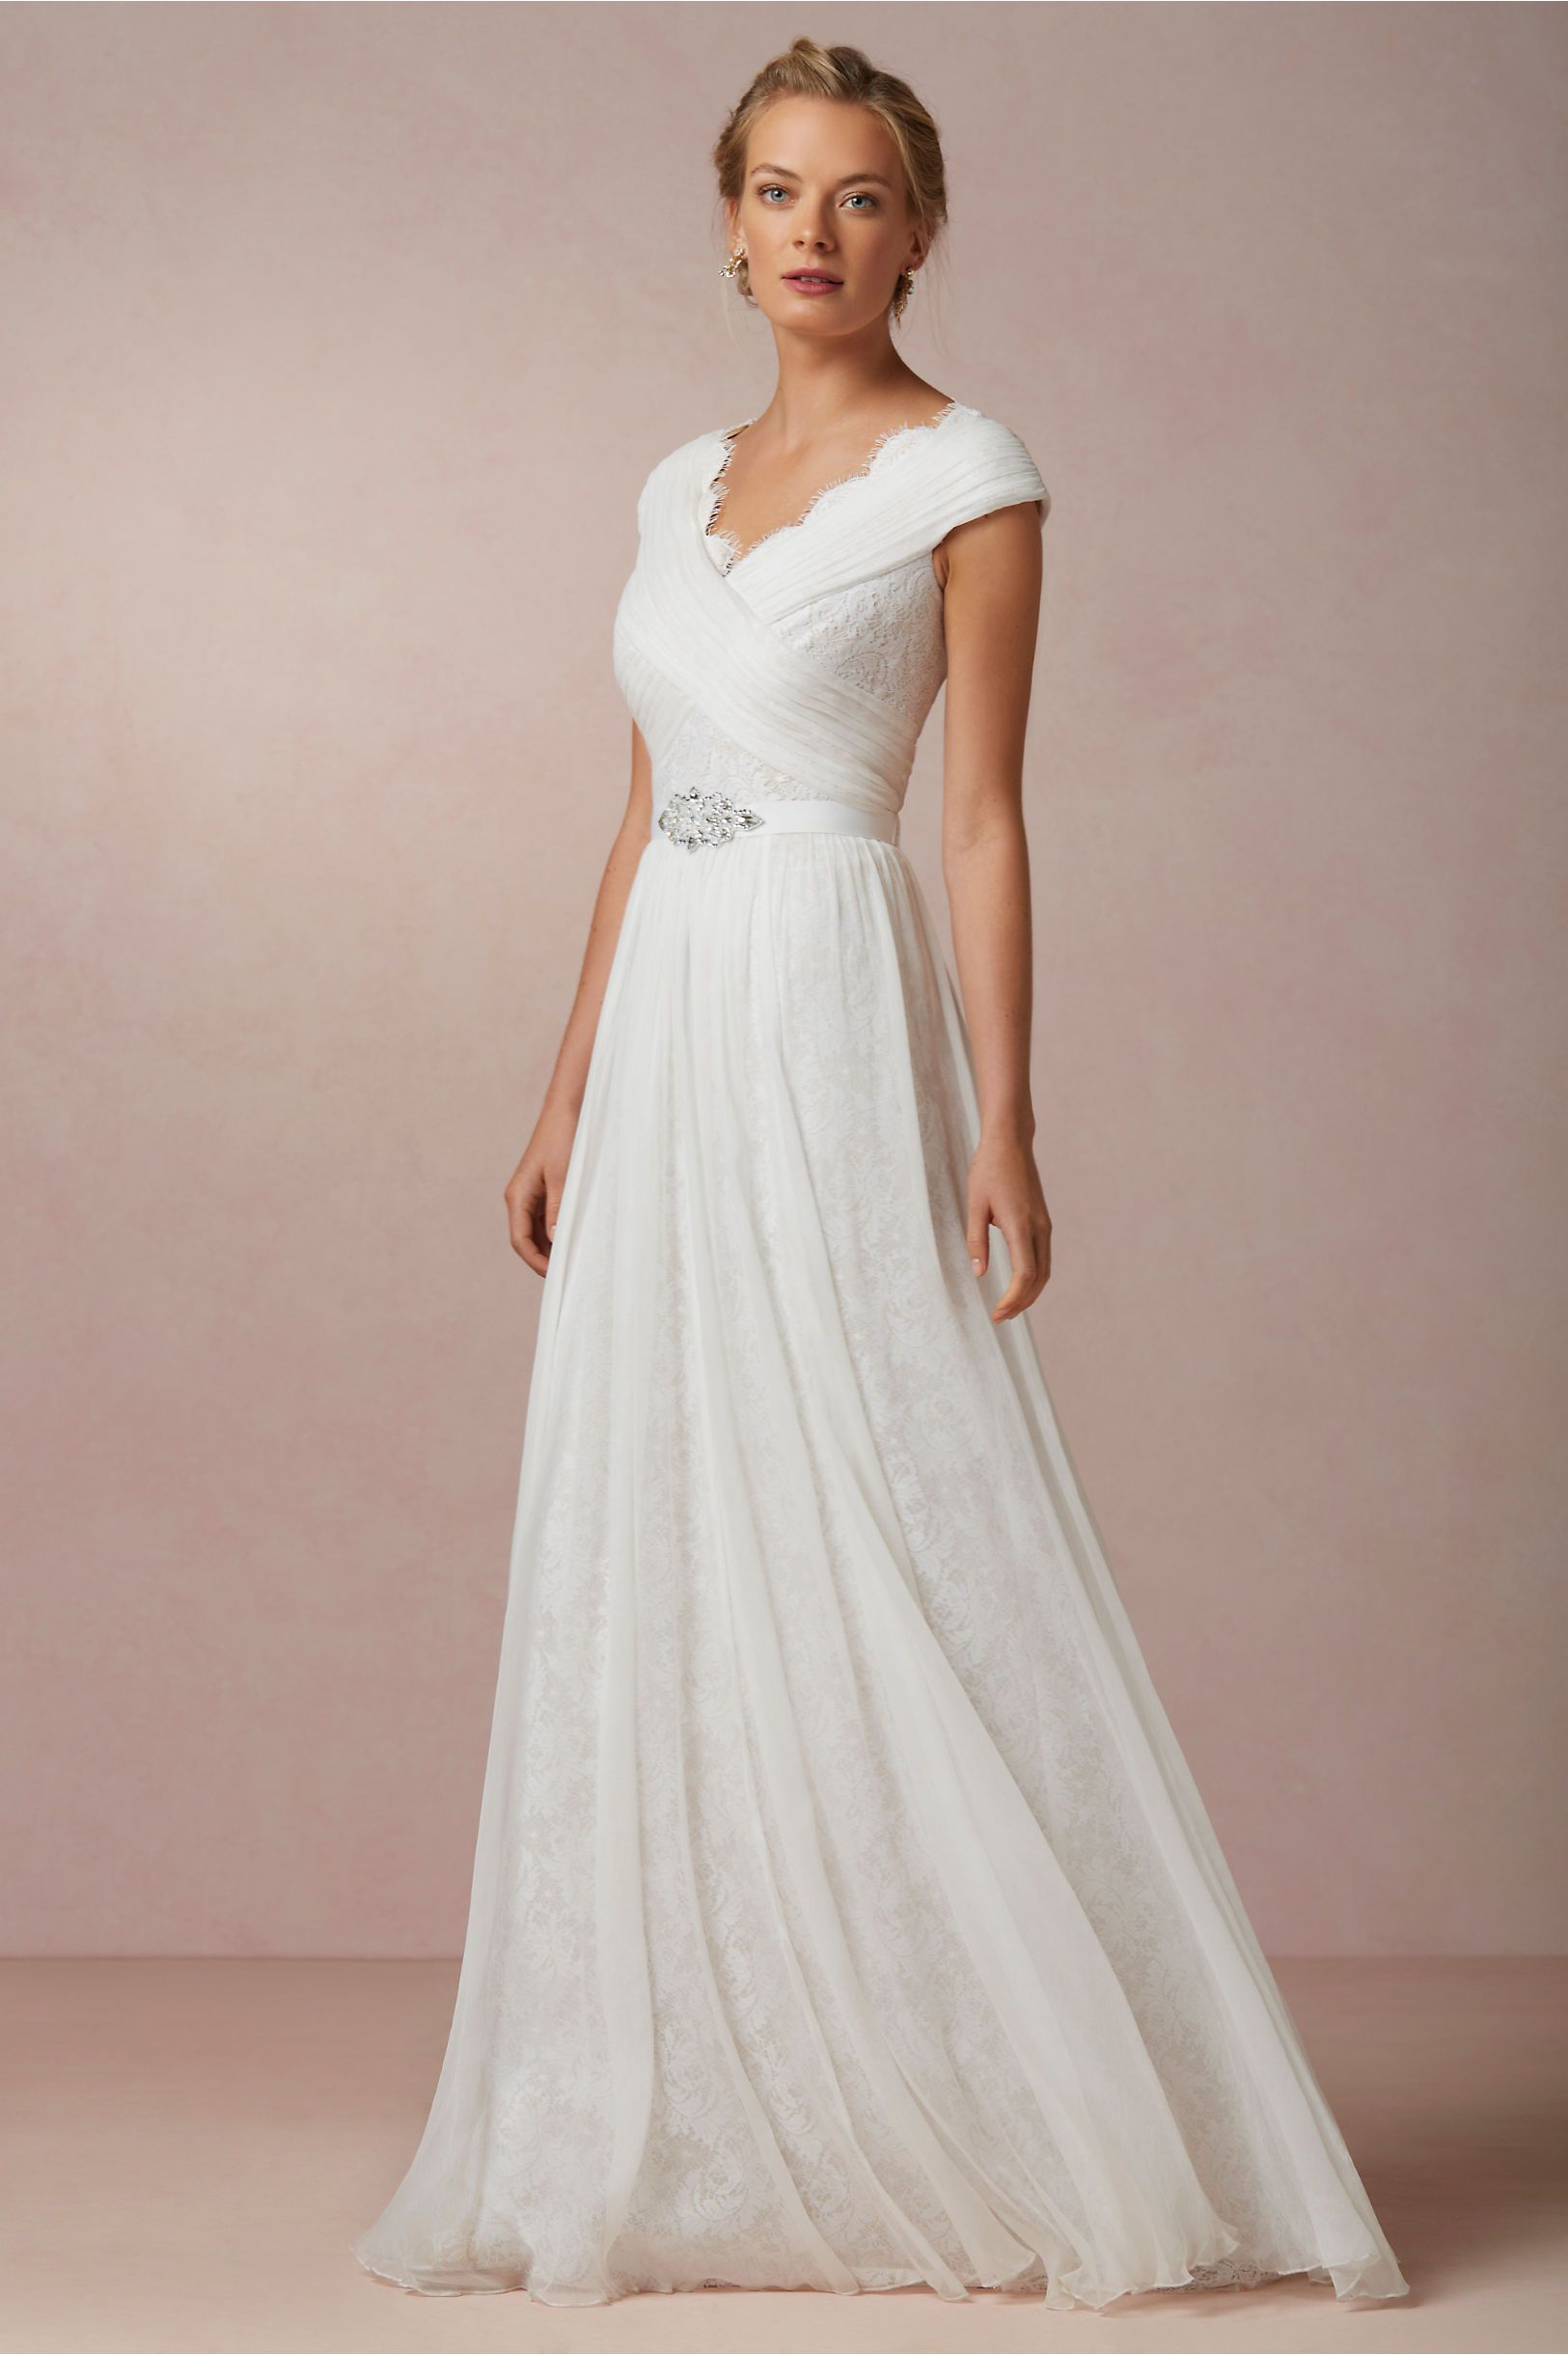 product | halcyon gown at bhldn | wedding dresses under 500